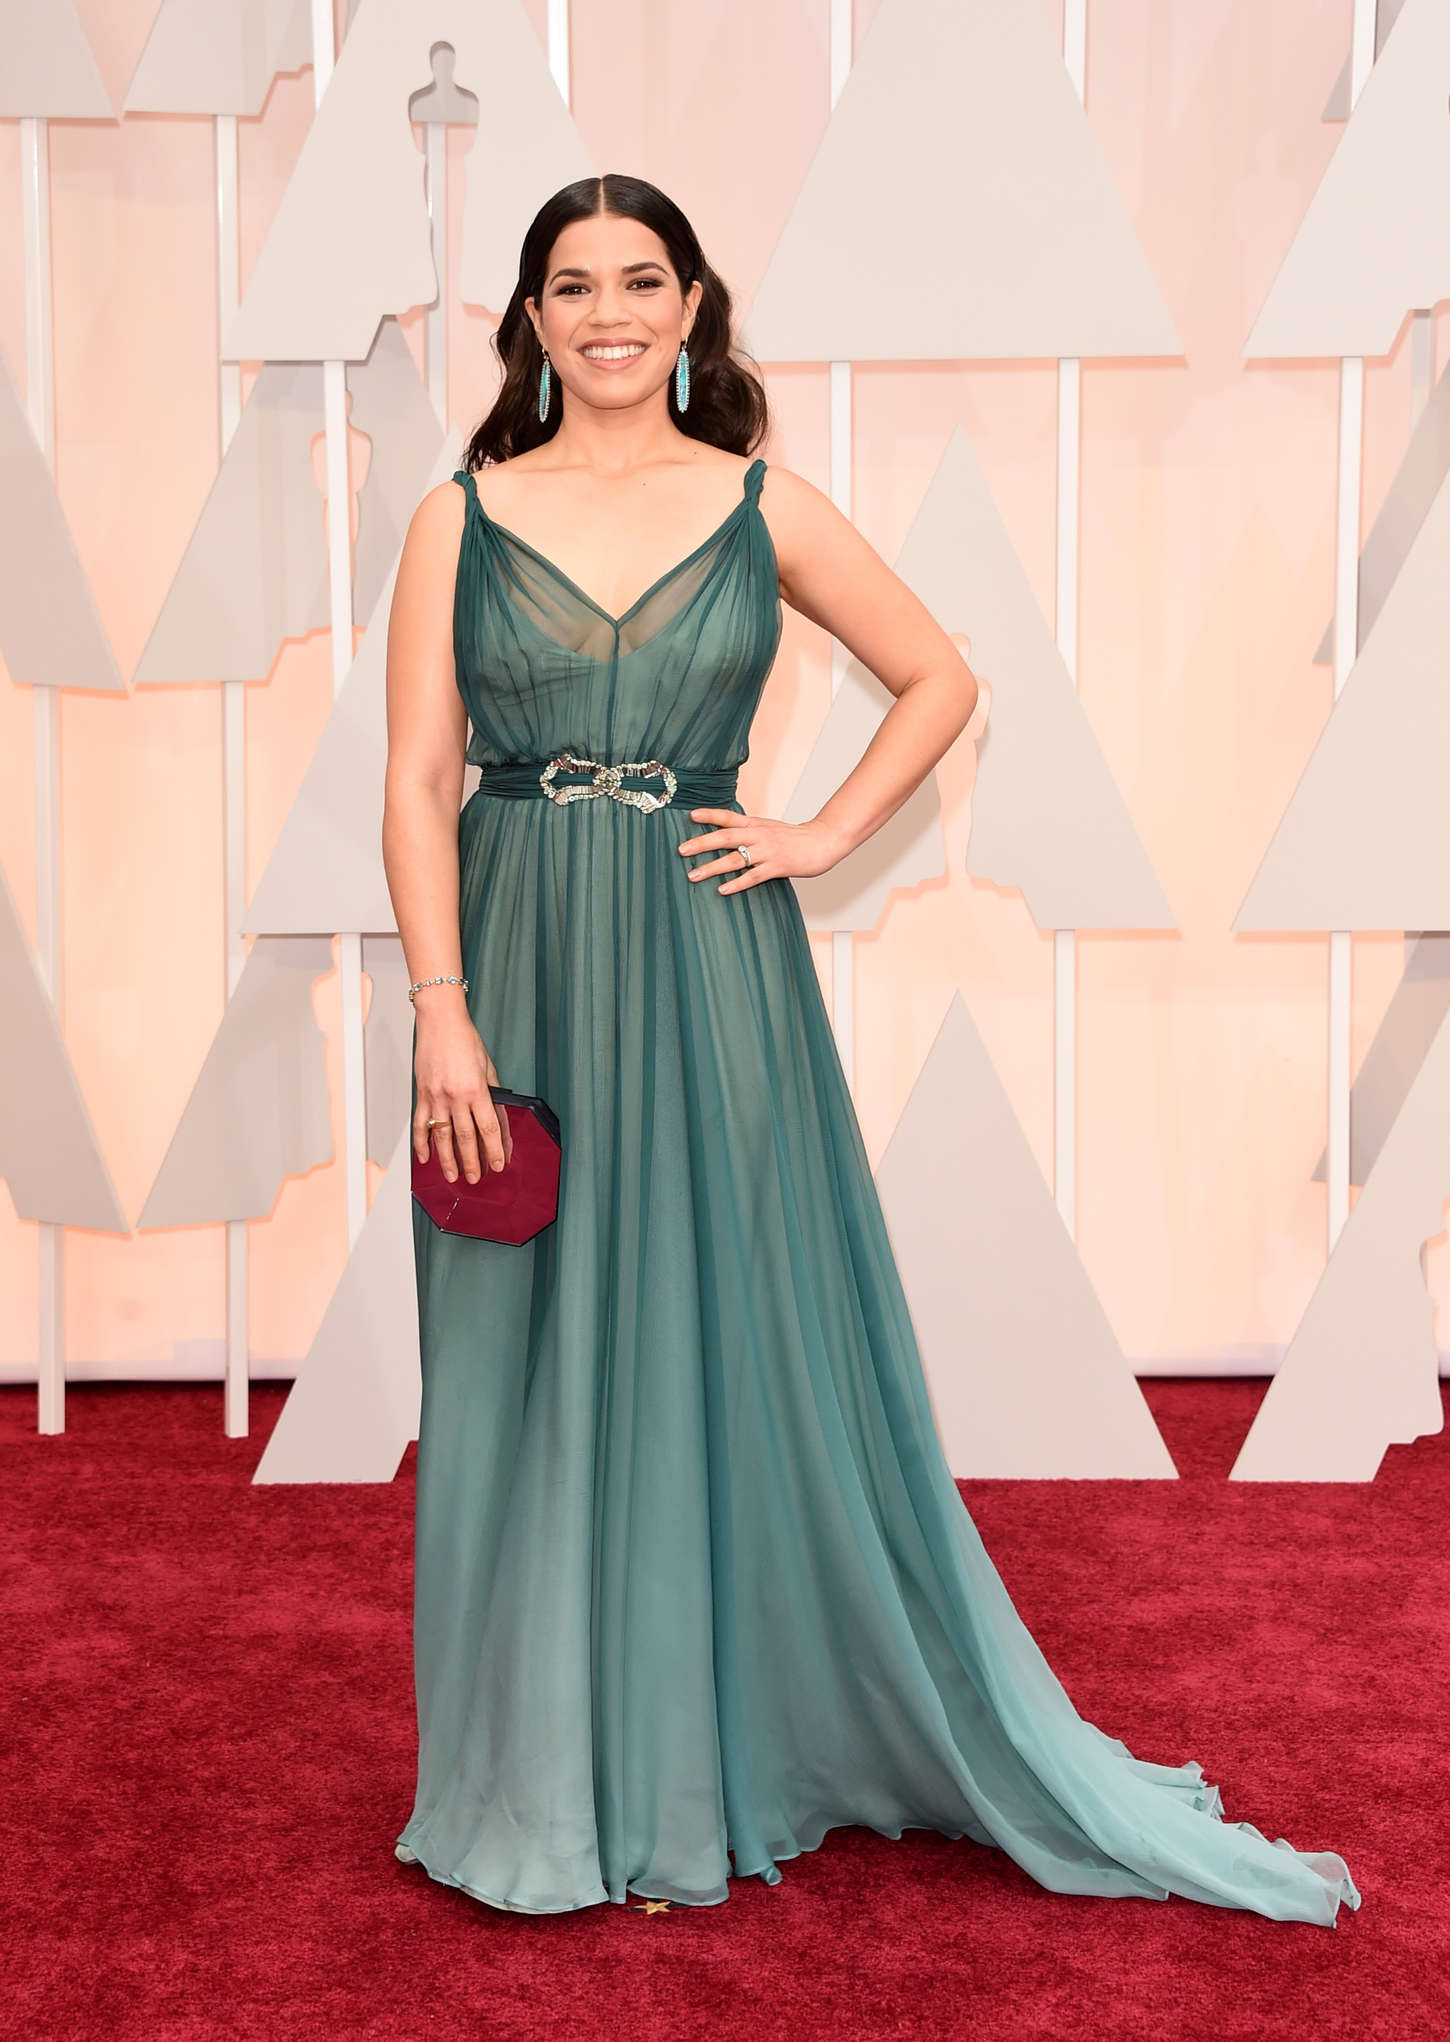 America Ferrera - 2015 Academy Awards in Hollywood